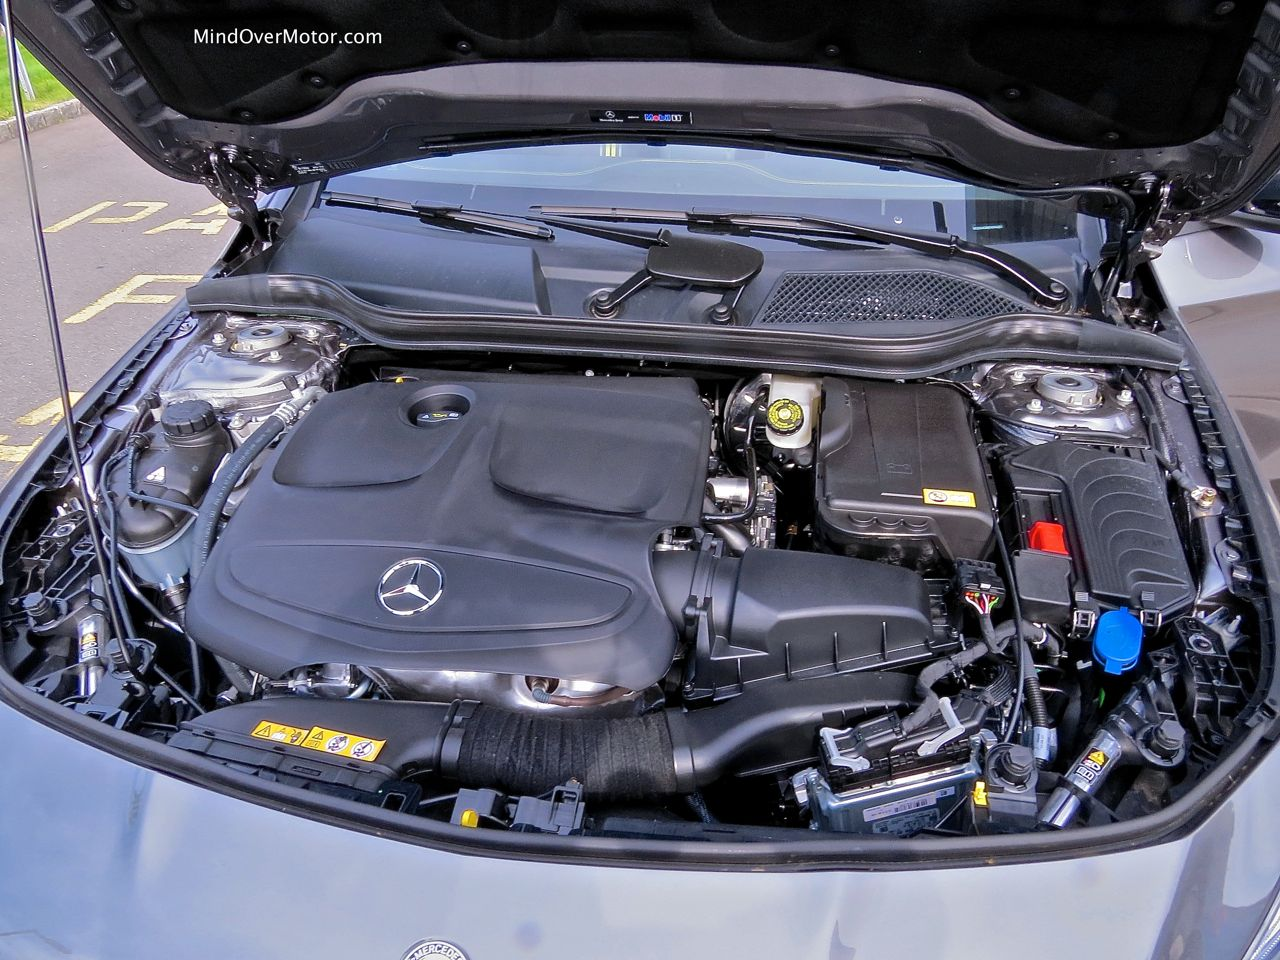 Mercedes-Benz CLA250 Engine